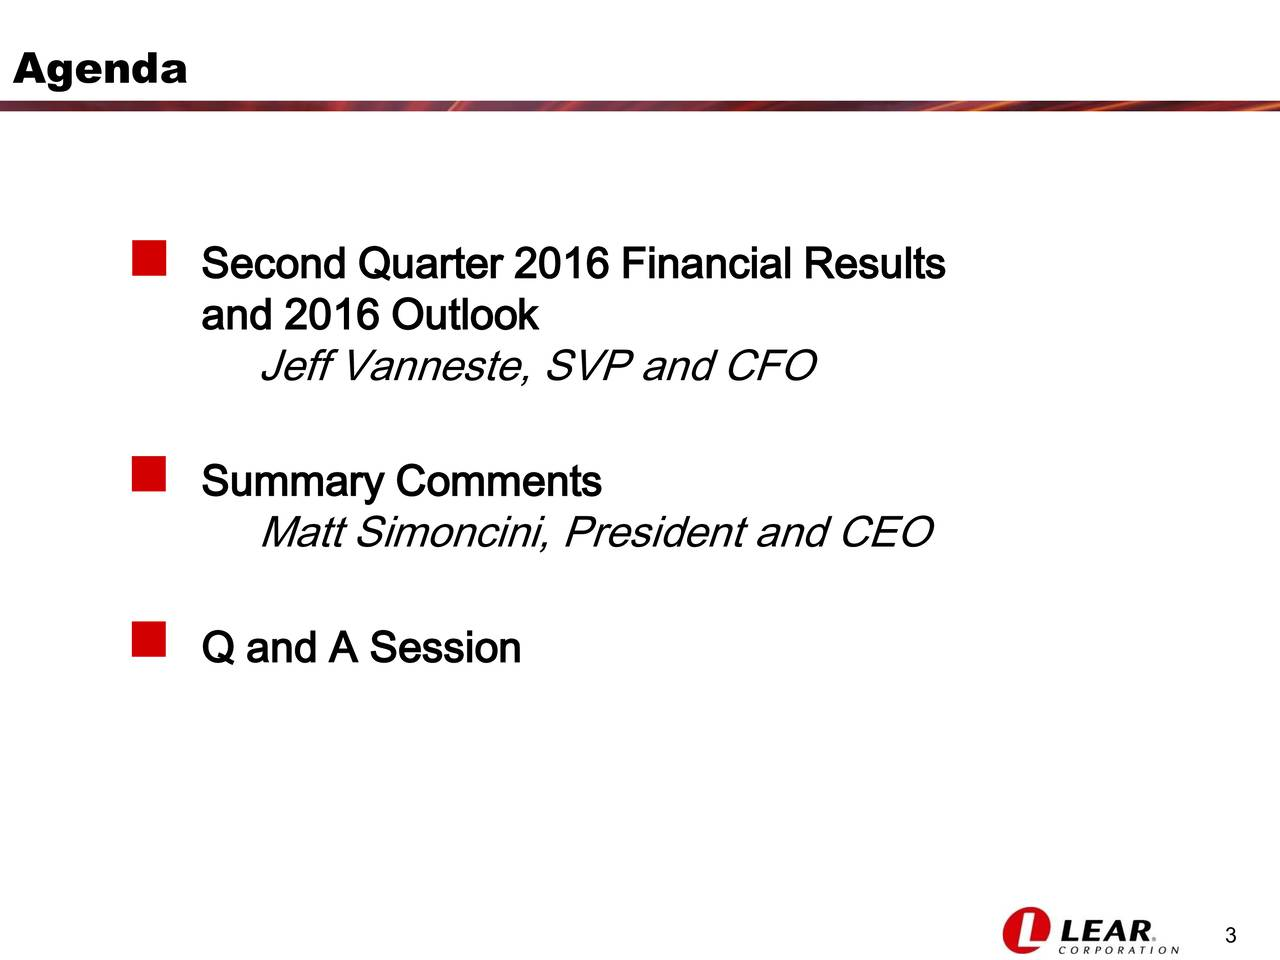 Second Quarter 2016 Financial Results and 2016 Outlook Jeff Vanneste, SVP and CFO Summary Comments Matt Simoncini, President and CEO Q and A Session